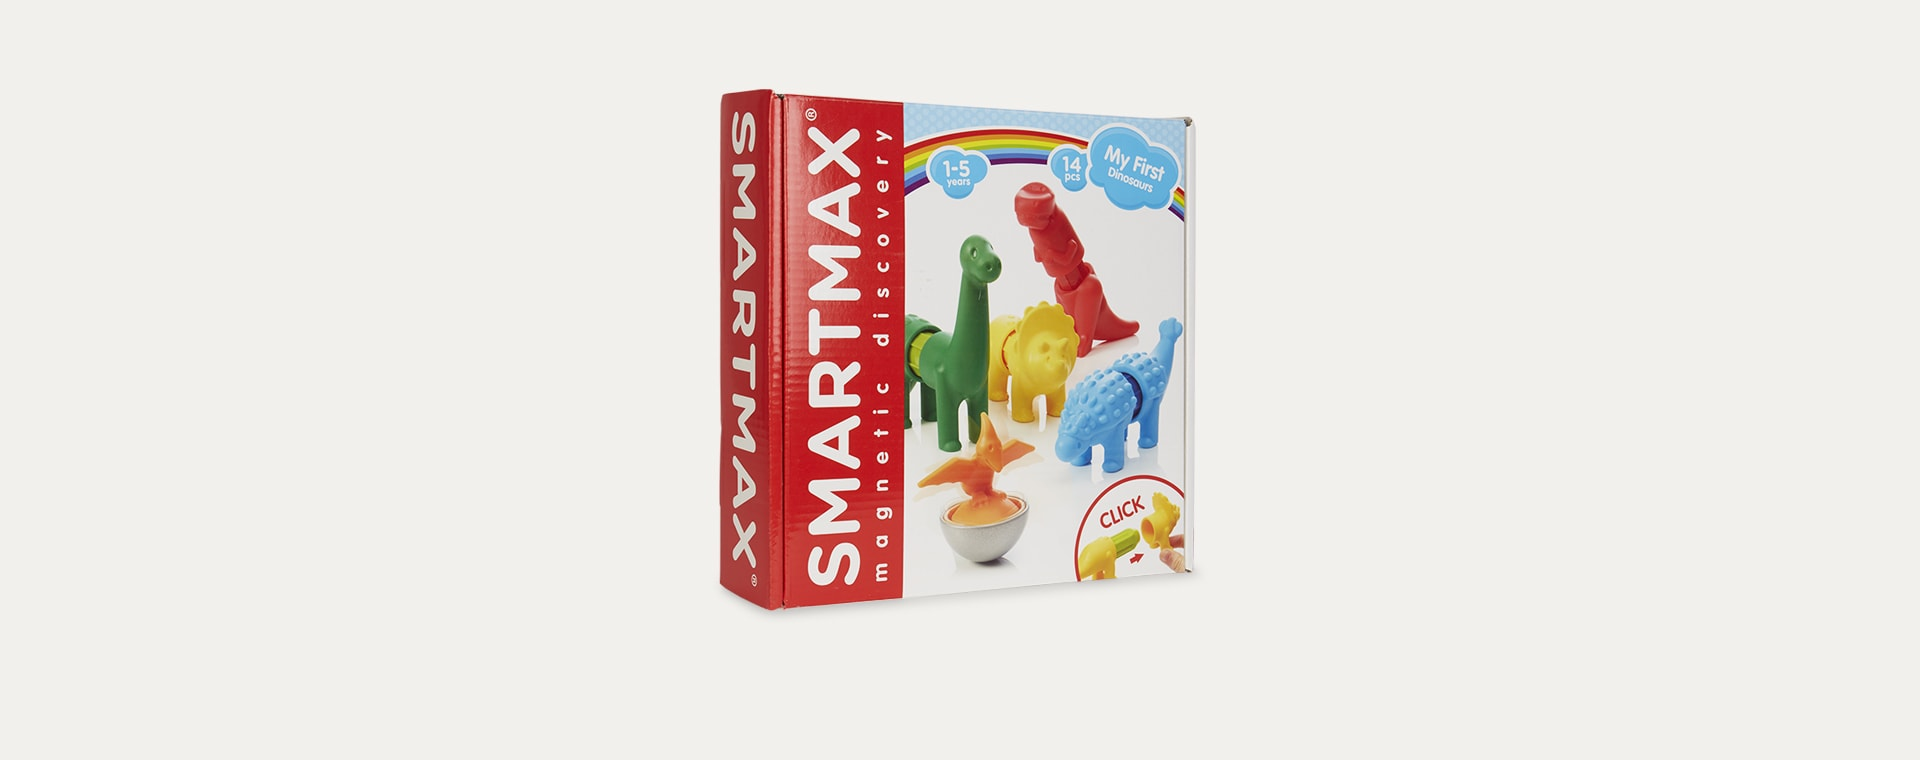 Dinosaurs SmartMax My First Dinosaurs